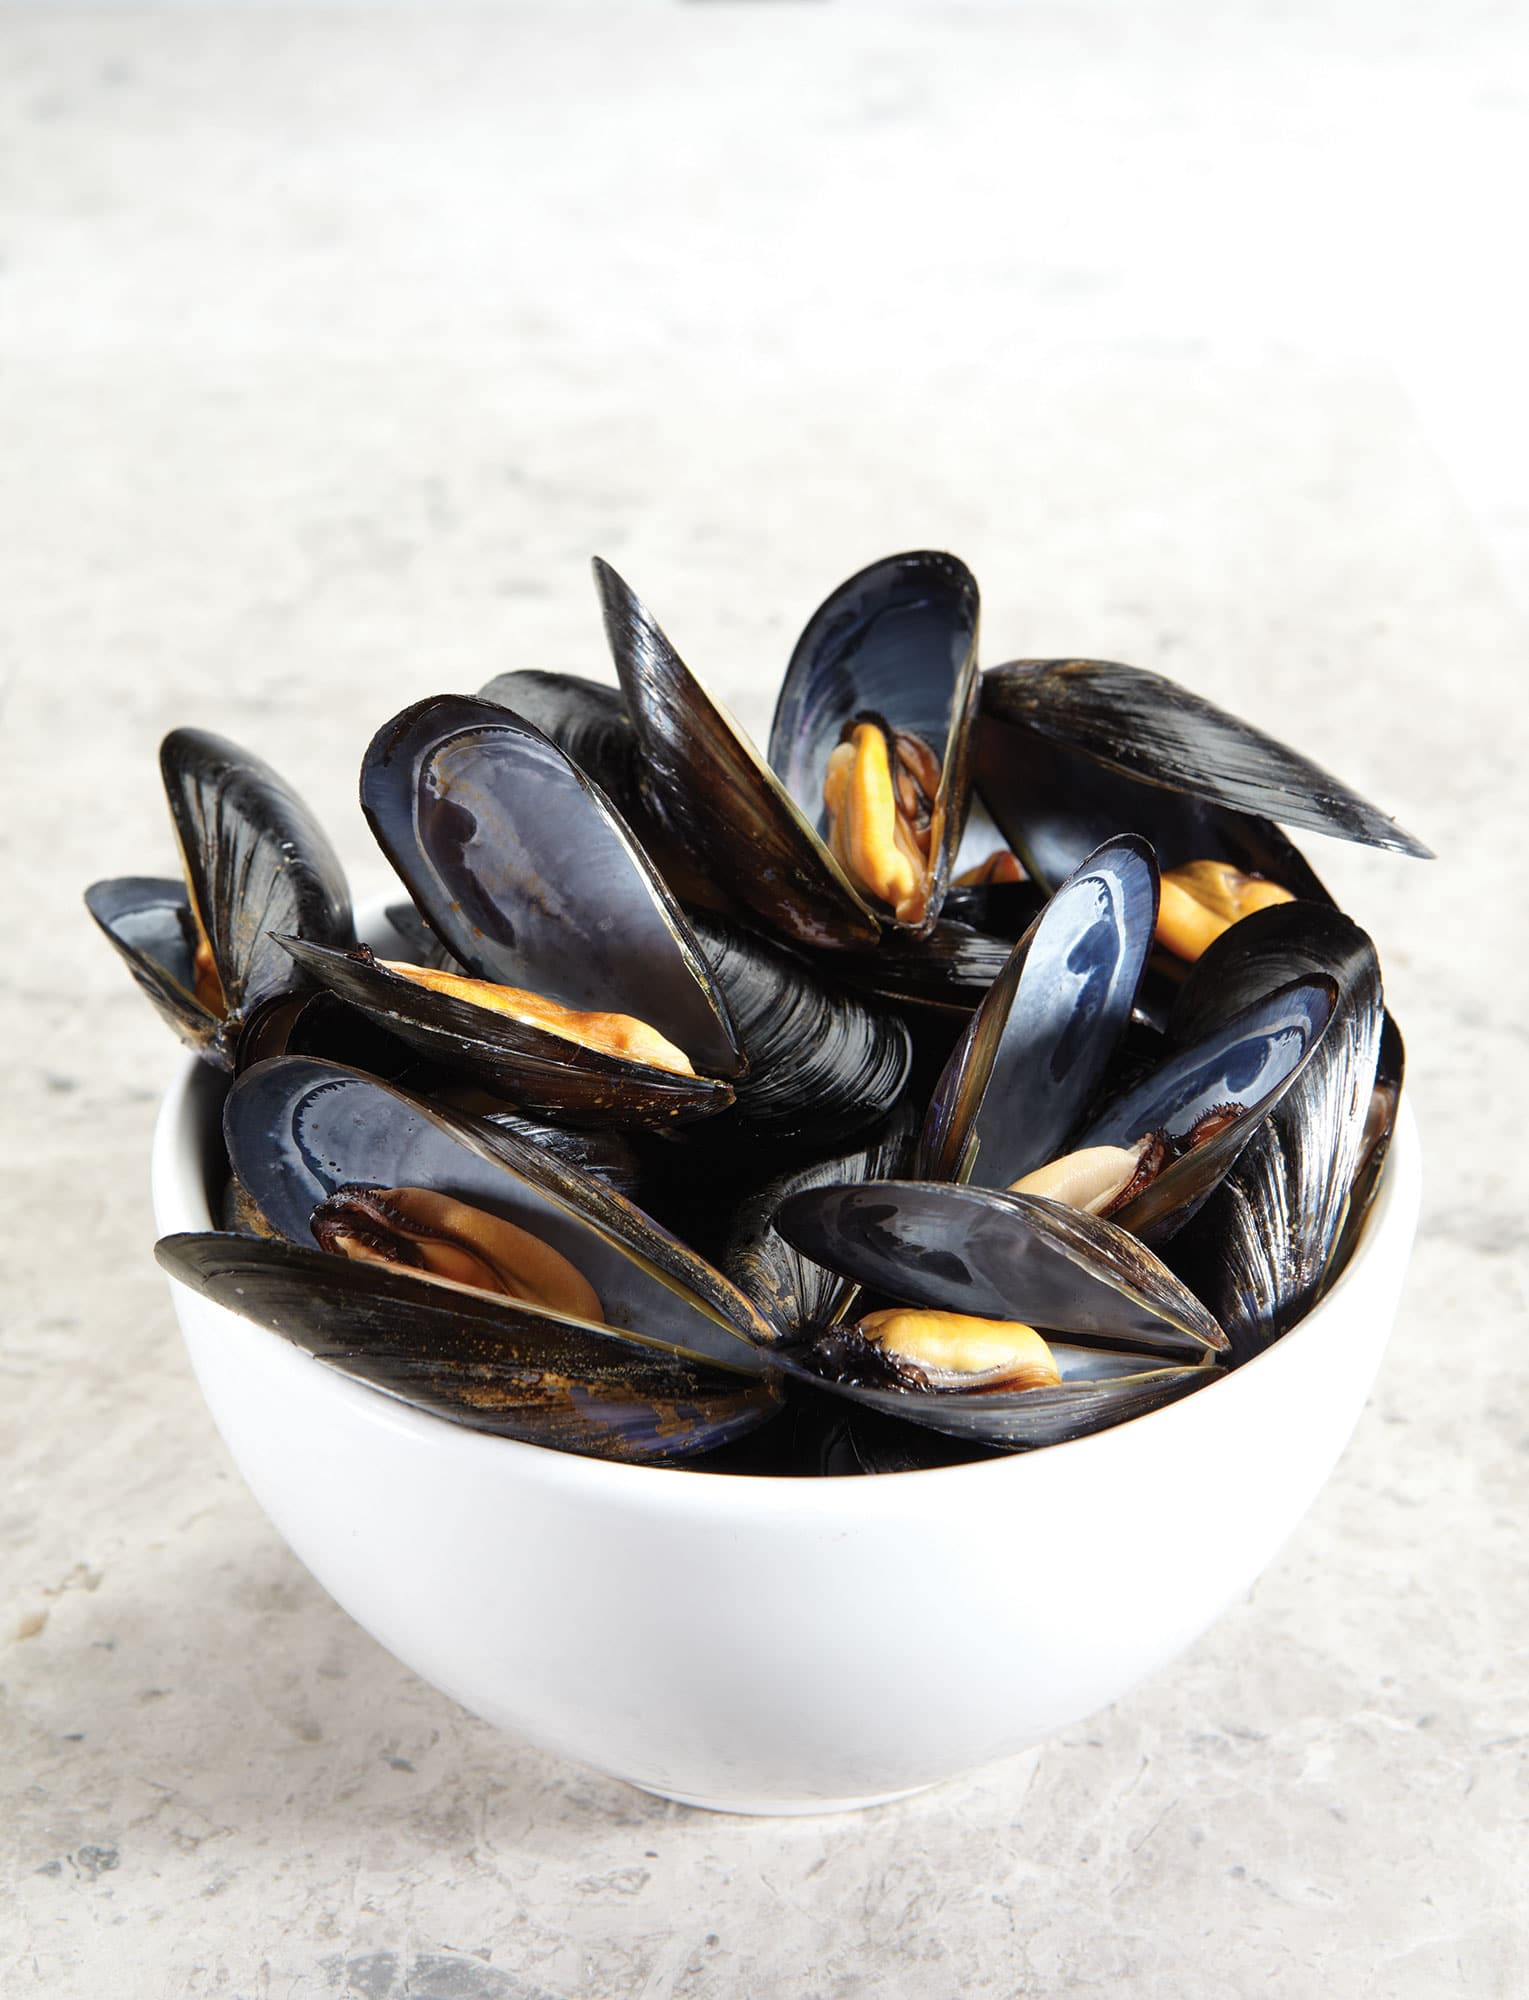 mussels-cockles-clams-welks-8